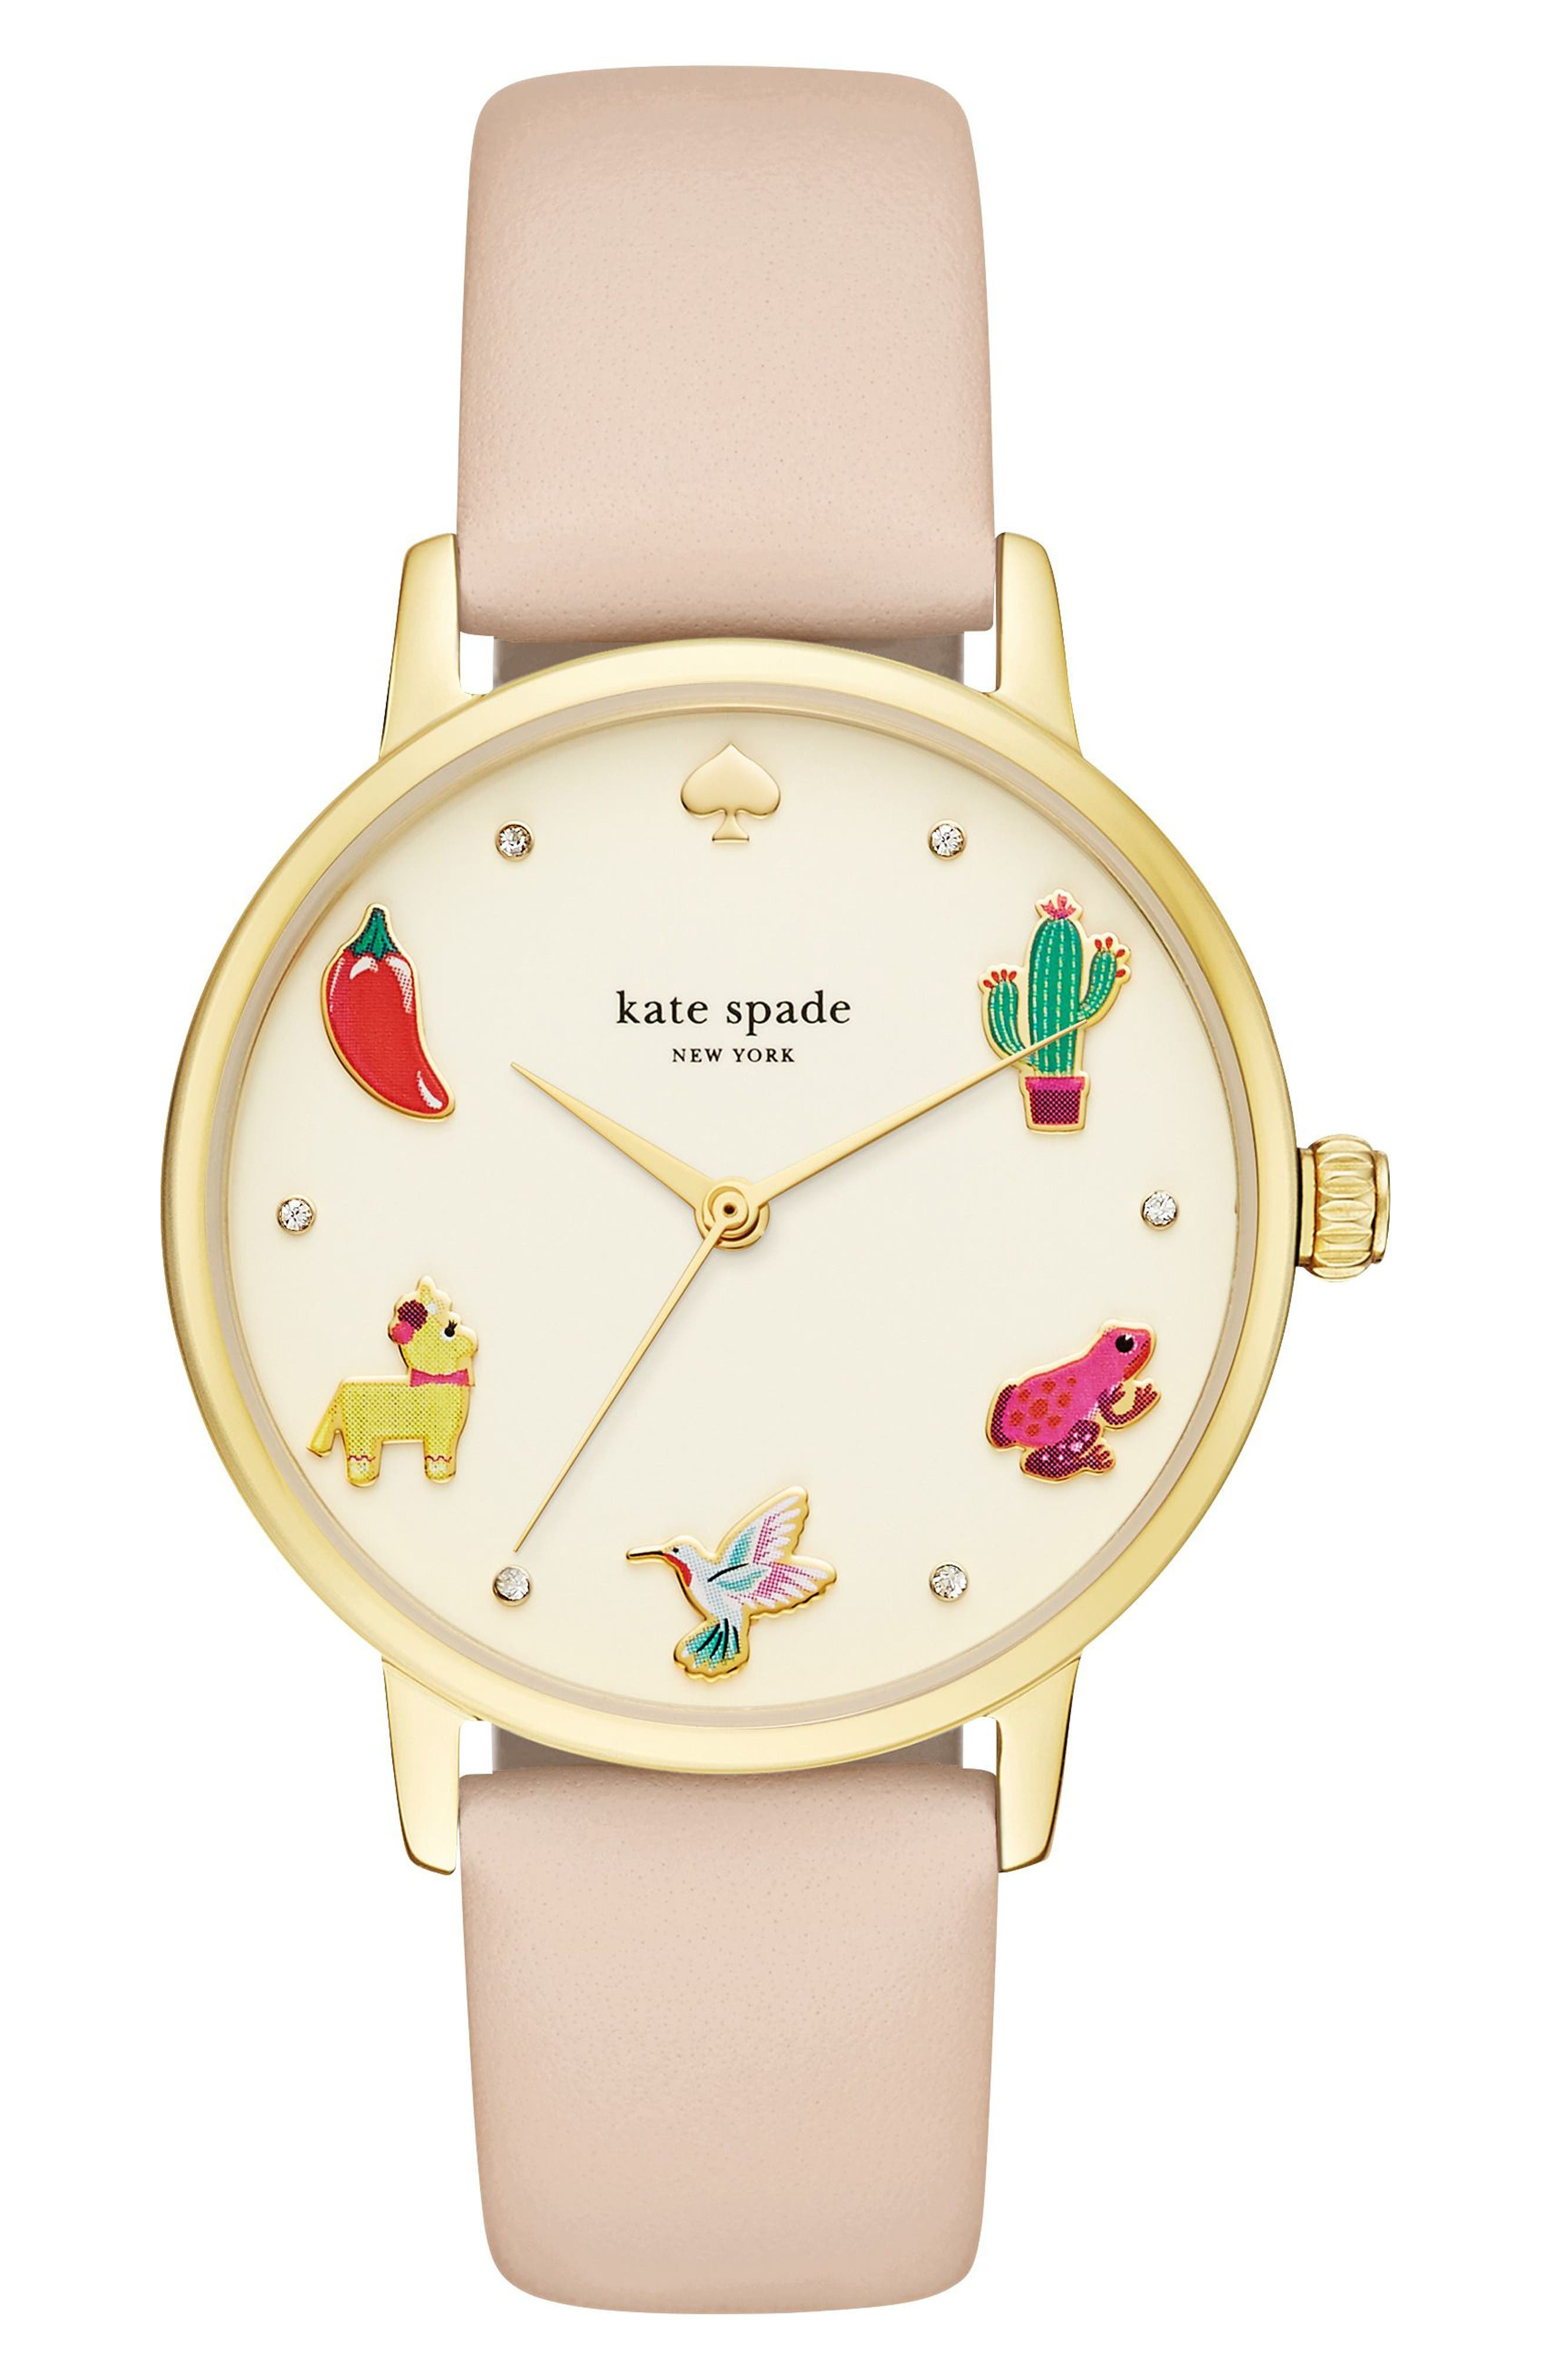 KATE SPADE NEW YORK,                             metro novelty leather strap watch, 34mm,                             Main thumbnail 1, color,                             250